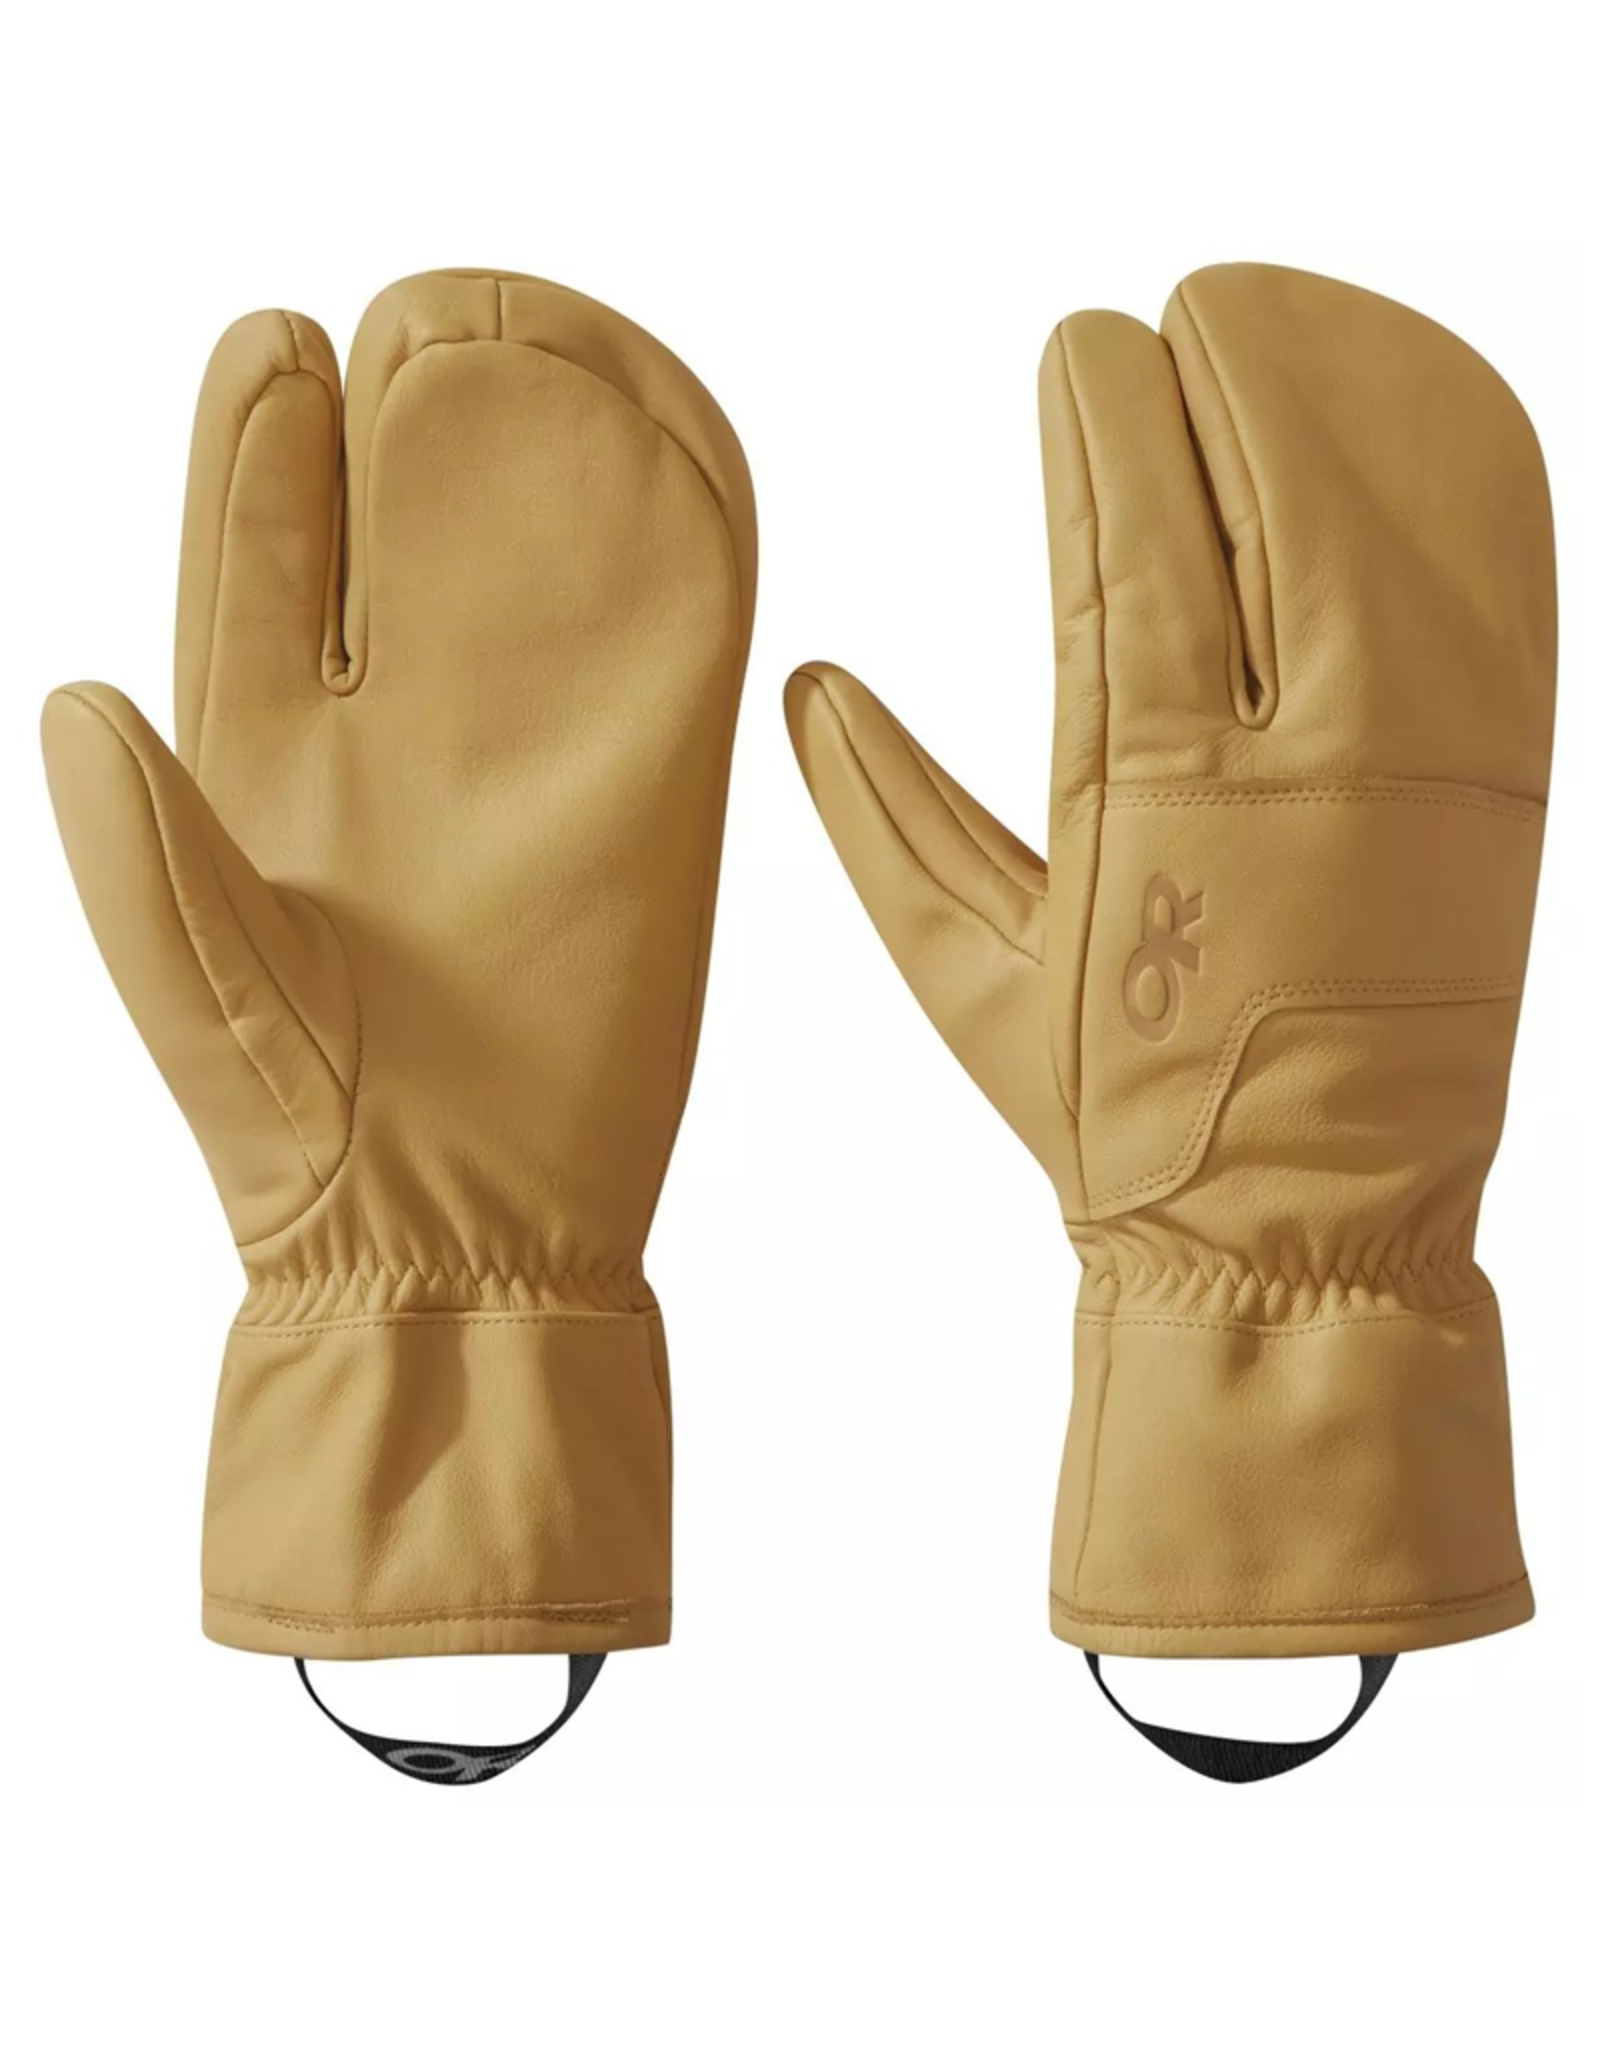 Outdoor Research Outdoor Research M's Aksel 3-Finger Work Glove